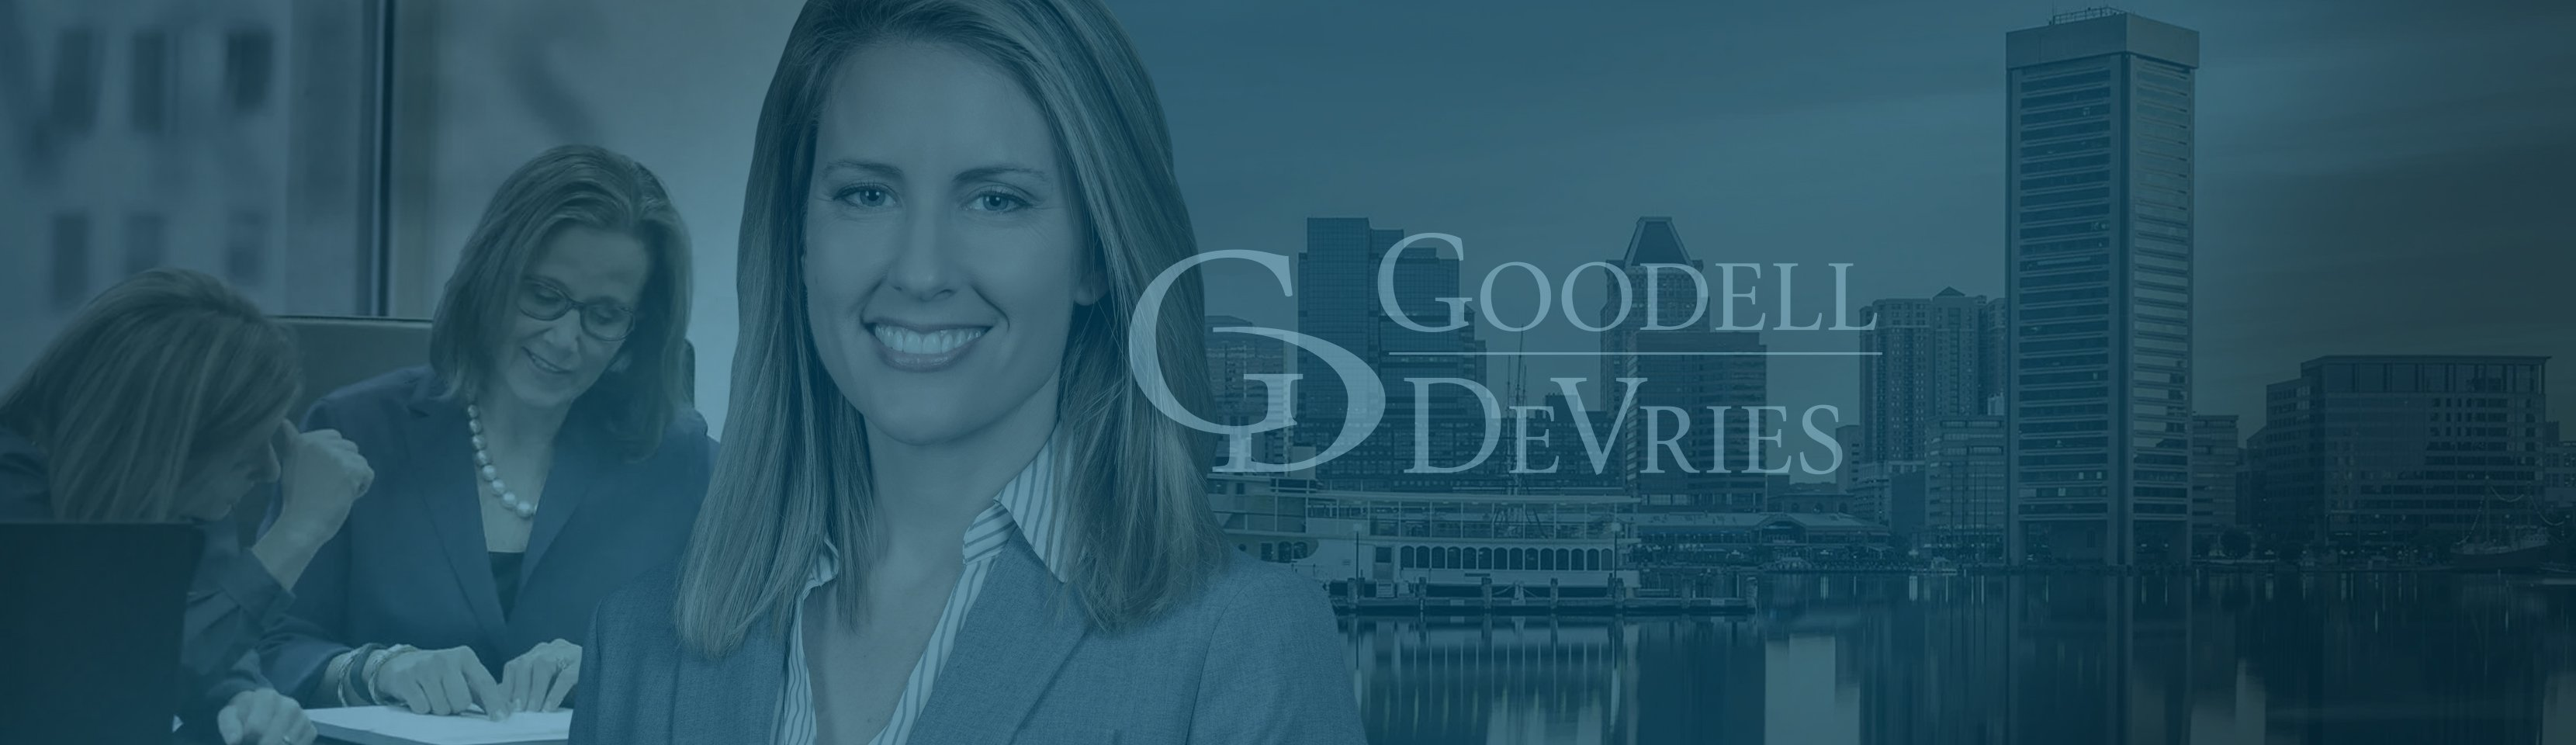 K. Nichole Nesbitt Named Managing Partner of Goodell DeVries